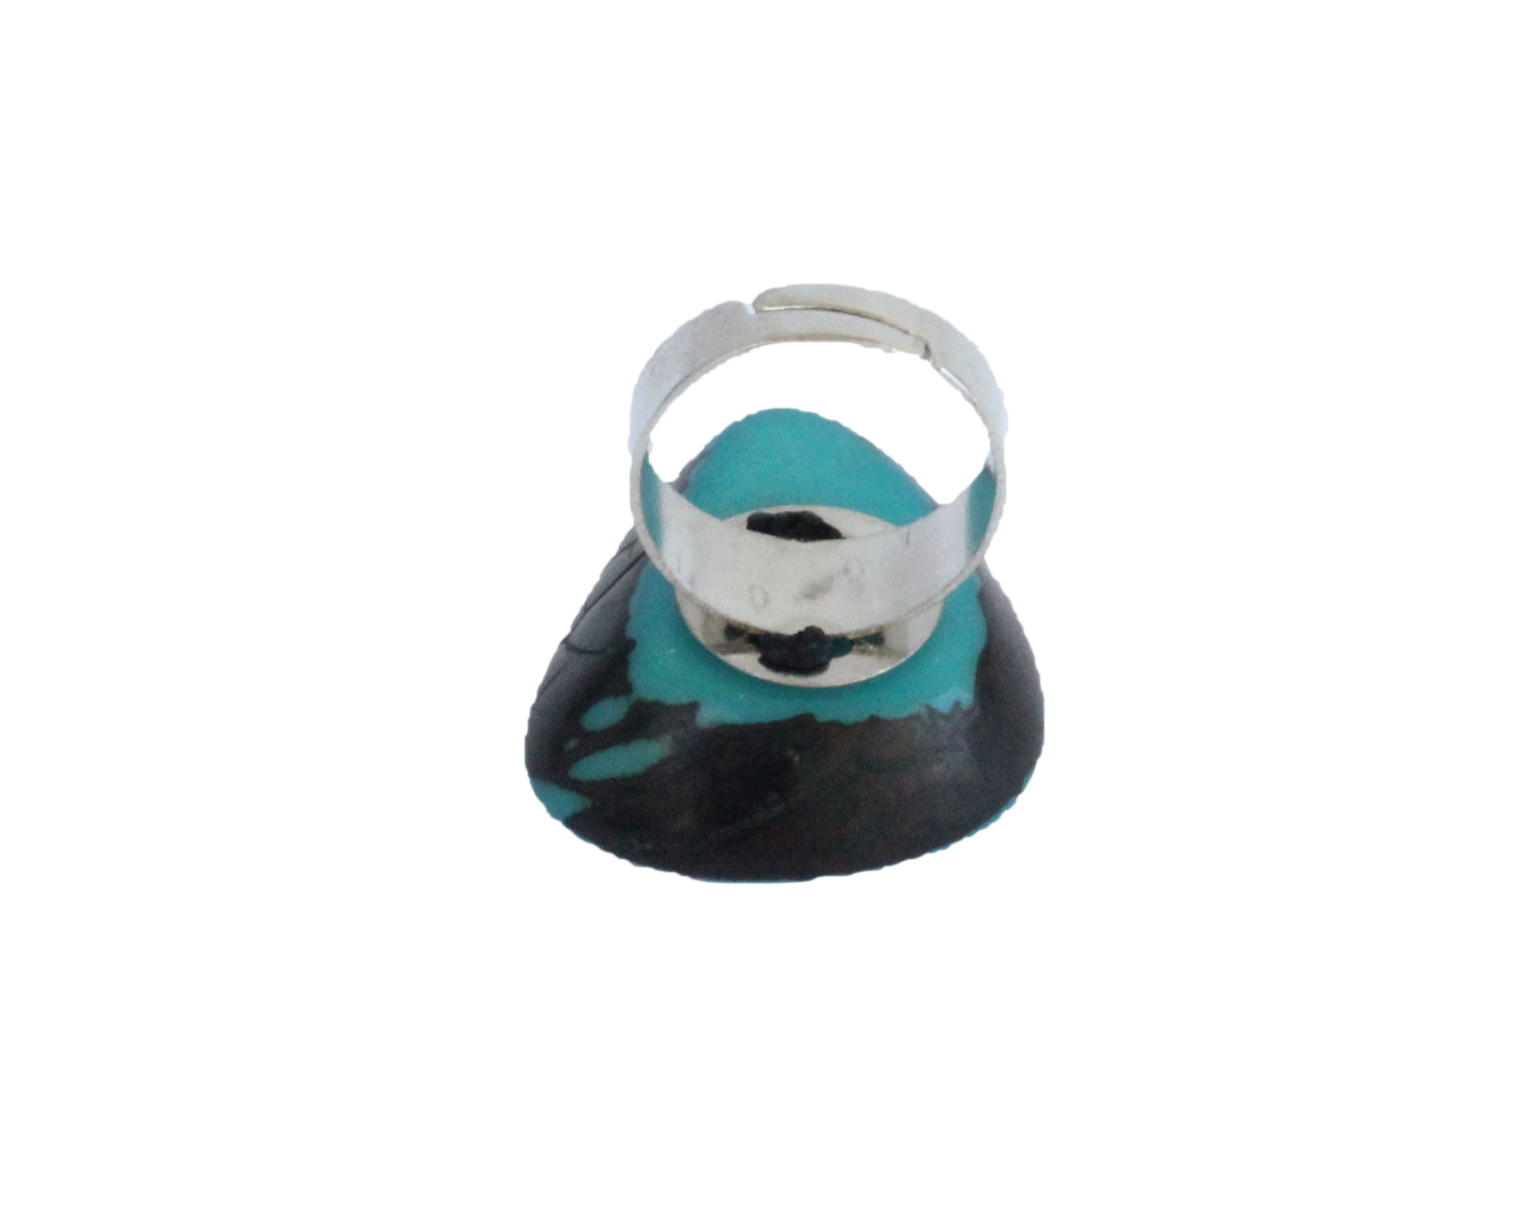 Handmade ring, tagua, turquoise, adjustable ring size, sustainable, ethical, back